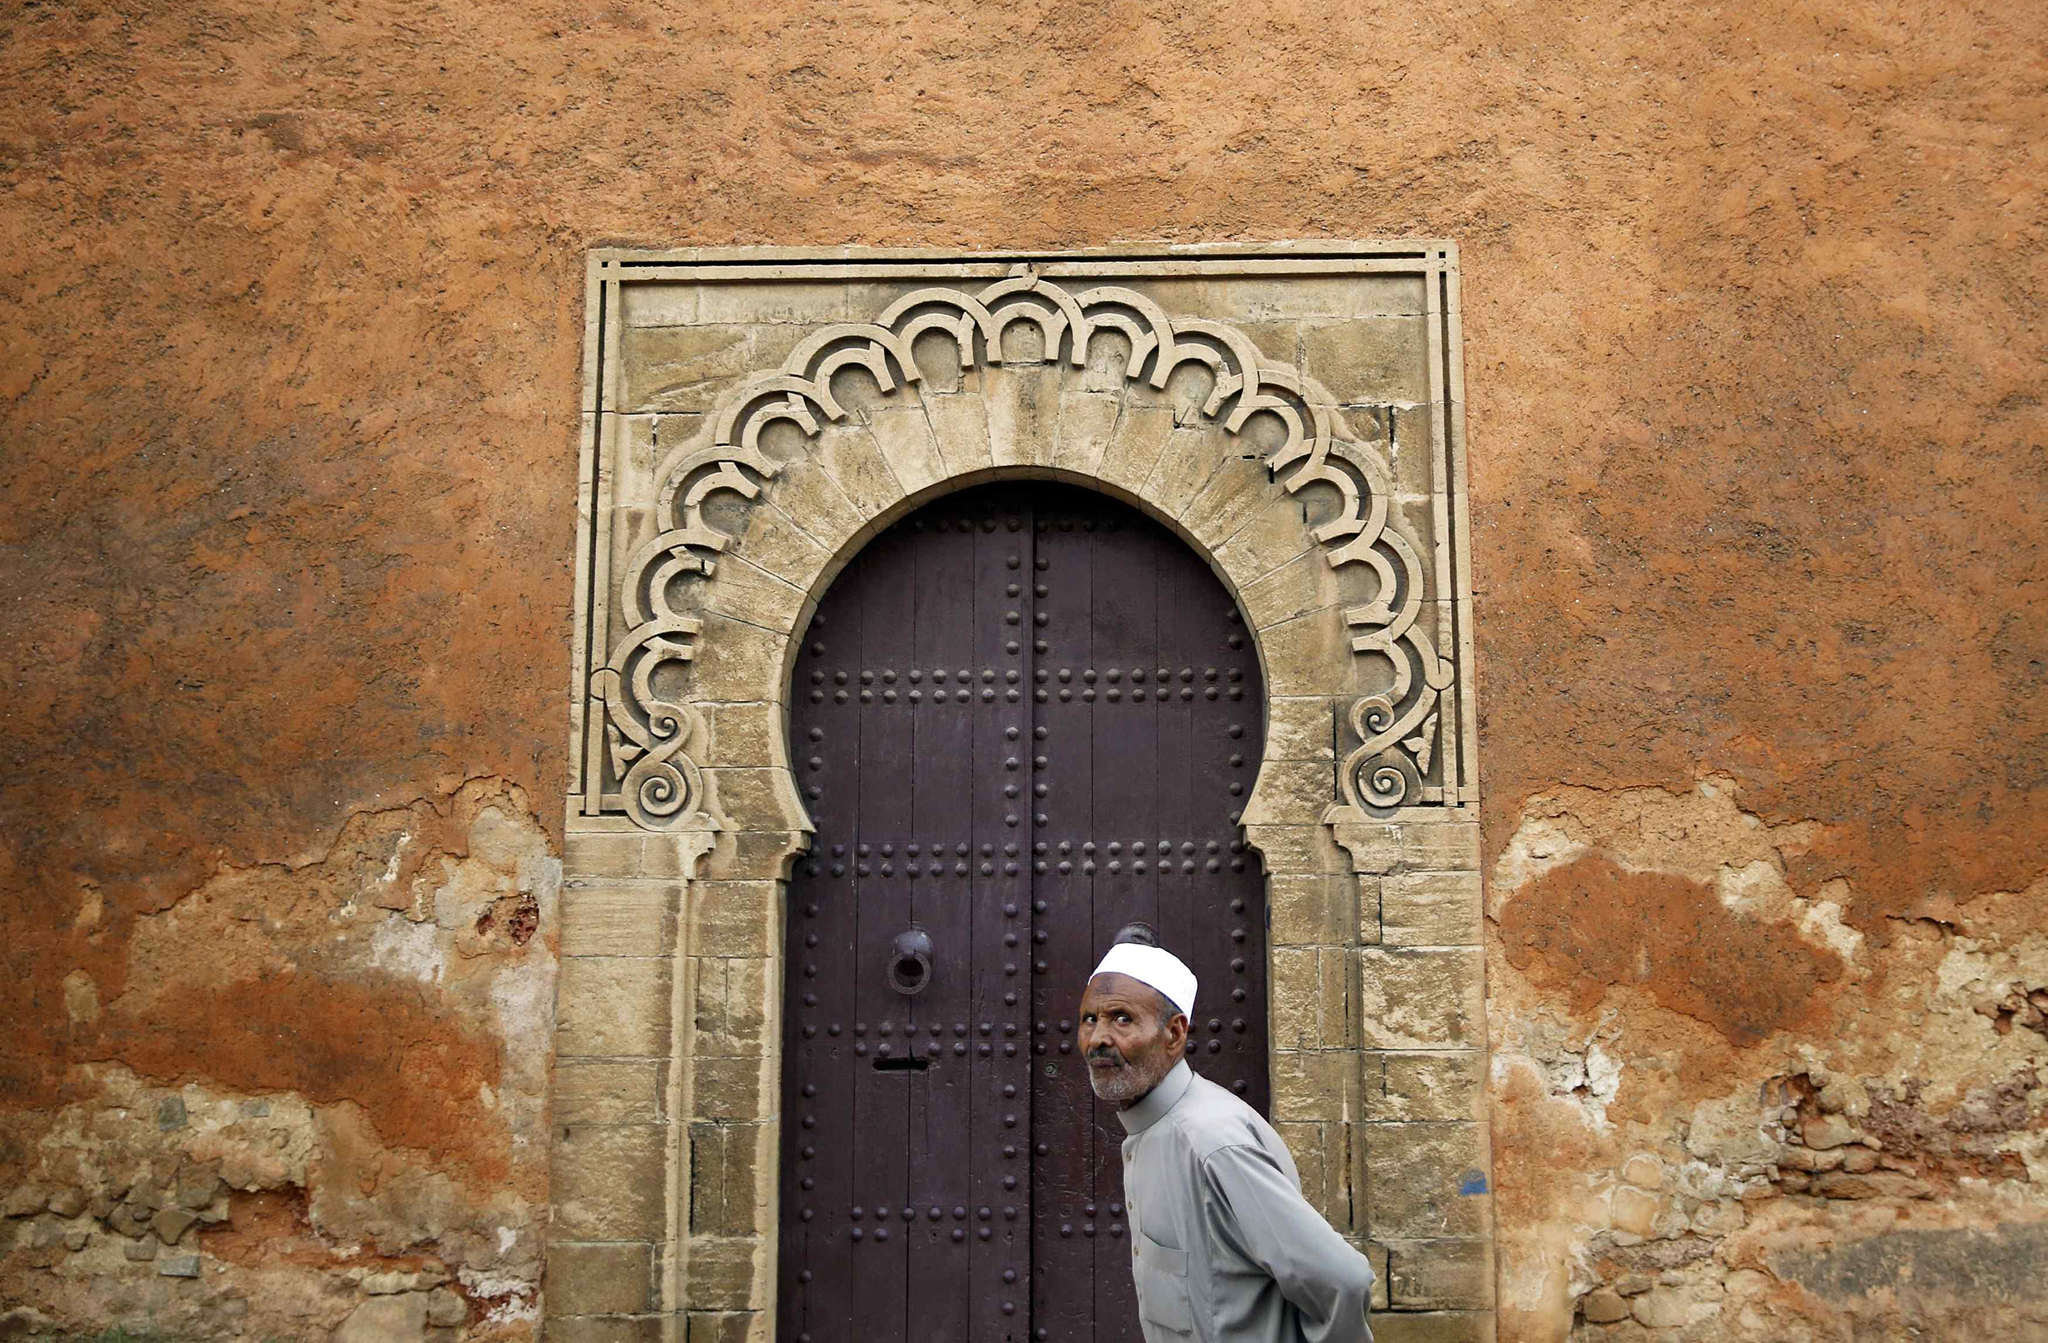 "A man walks in front of doors in a wall of Rabat's Medina...A man walks in front of doors in a wall of Rabat's Medina September 23, 2014. UNESCO made Rabat a World Heritage Site two years ago and media and tour operators call it a ""must-see destination."" But it seems the tourist hordes have yet to find out. While visitors are getting squeezed through the better-known sites of Marrakesh and Fez, the old part of Rabat - with its beautiful Medina and Kasbah of the Udayas - remains an almost unspoiled oasis of calm. Smaller and more compact, its labyrinths of streets, passages and dead ends are a treasure trove of shapes and colours, of moments begging to be caught by the photographer's lens. Picture taken September 23, 2014.    REUTERS/Damir Sagolj (MOROCCO - Tags: SOCIETY RELIGION TRAVEL TPX IMAGES OF THE DAY)     ATTENTION EDITORS: PICTURE 05 OF 24 FOR WIDER IMAGE PACKAGE 'RABAT'S TREASURE TROVE OF COLOURS'  TO FIND ALL IMAGES SEARCH 'RABAT DAMIR'"